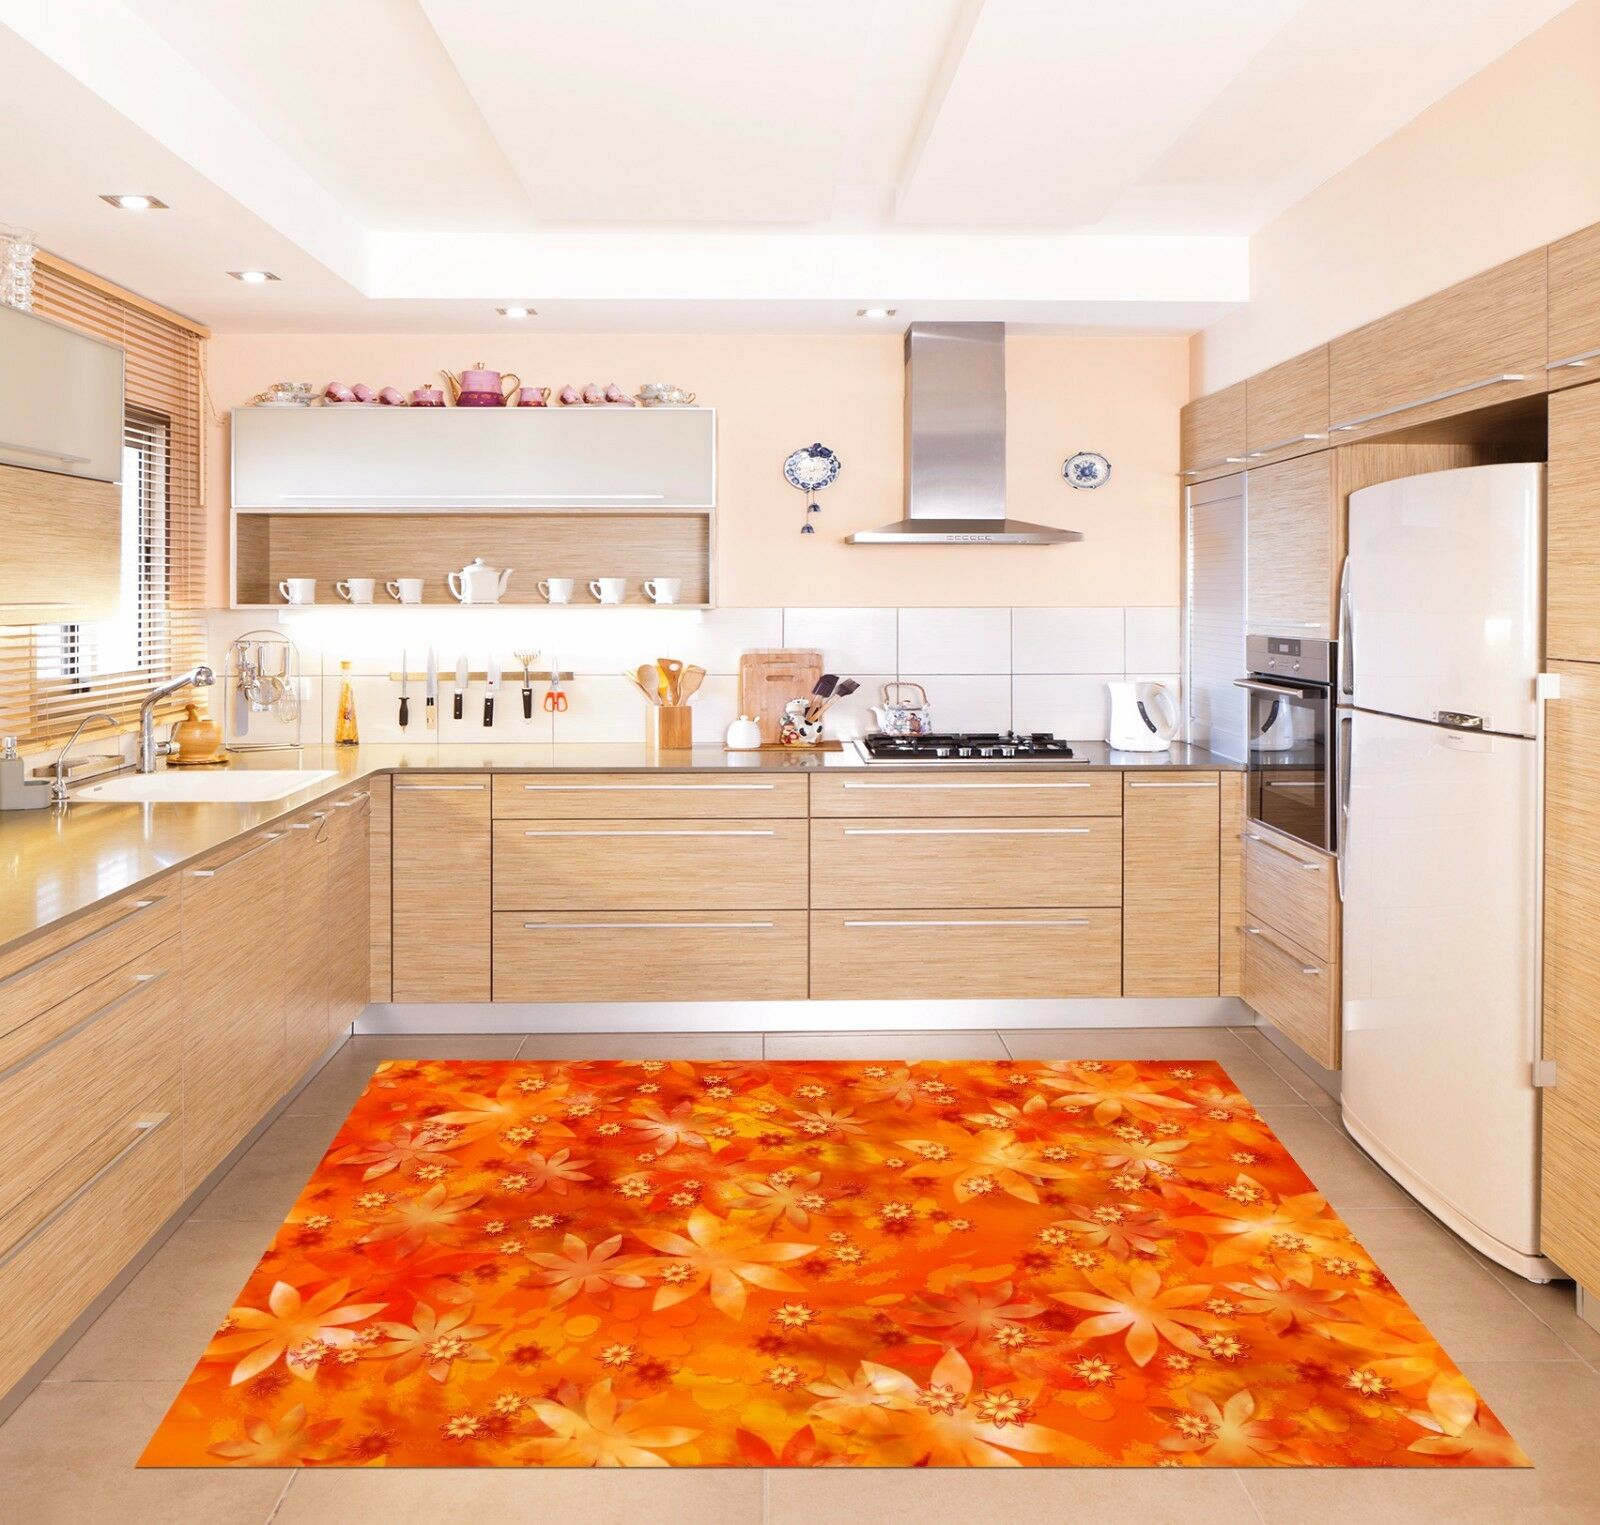 3D Orange Art 113 Kitchen Mat Floor Murals Wall Print Wall Deco AJ WALLPAPER UK